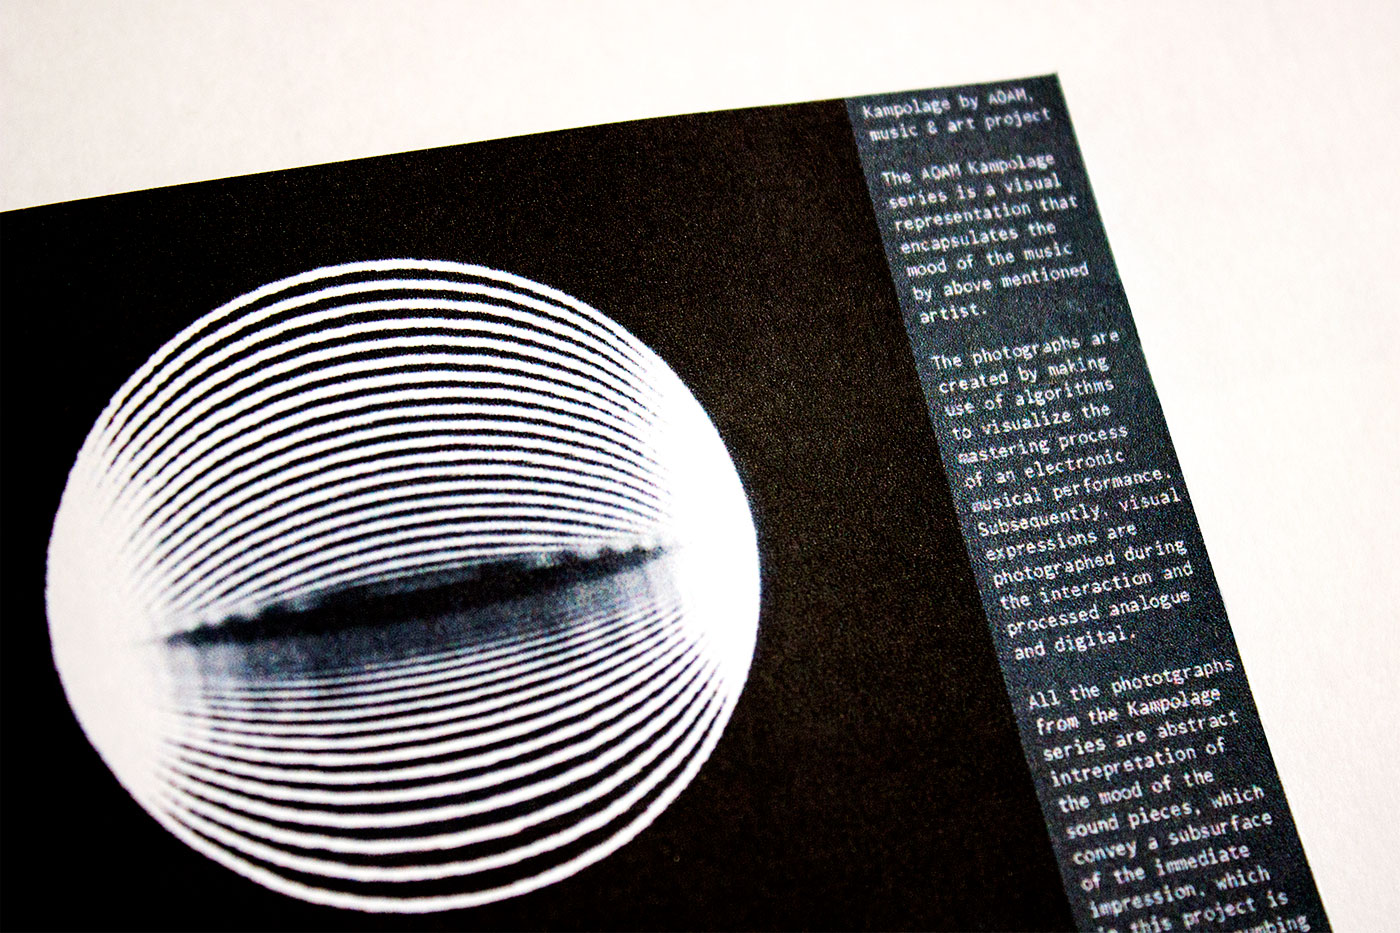 details-book-design0-music-art-lush-records-by-graphic-designer-and-artist-marie-brogger